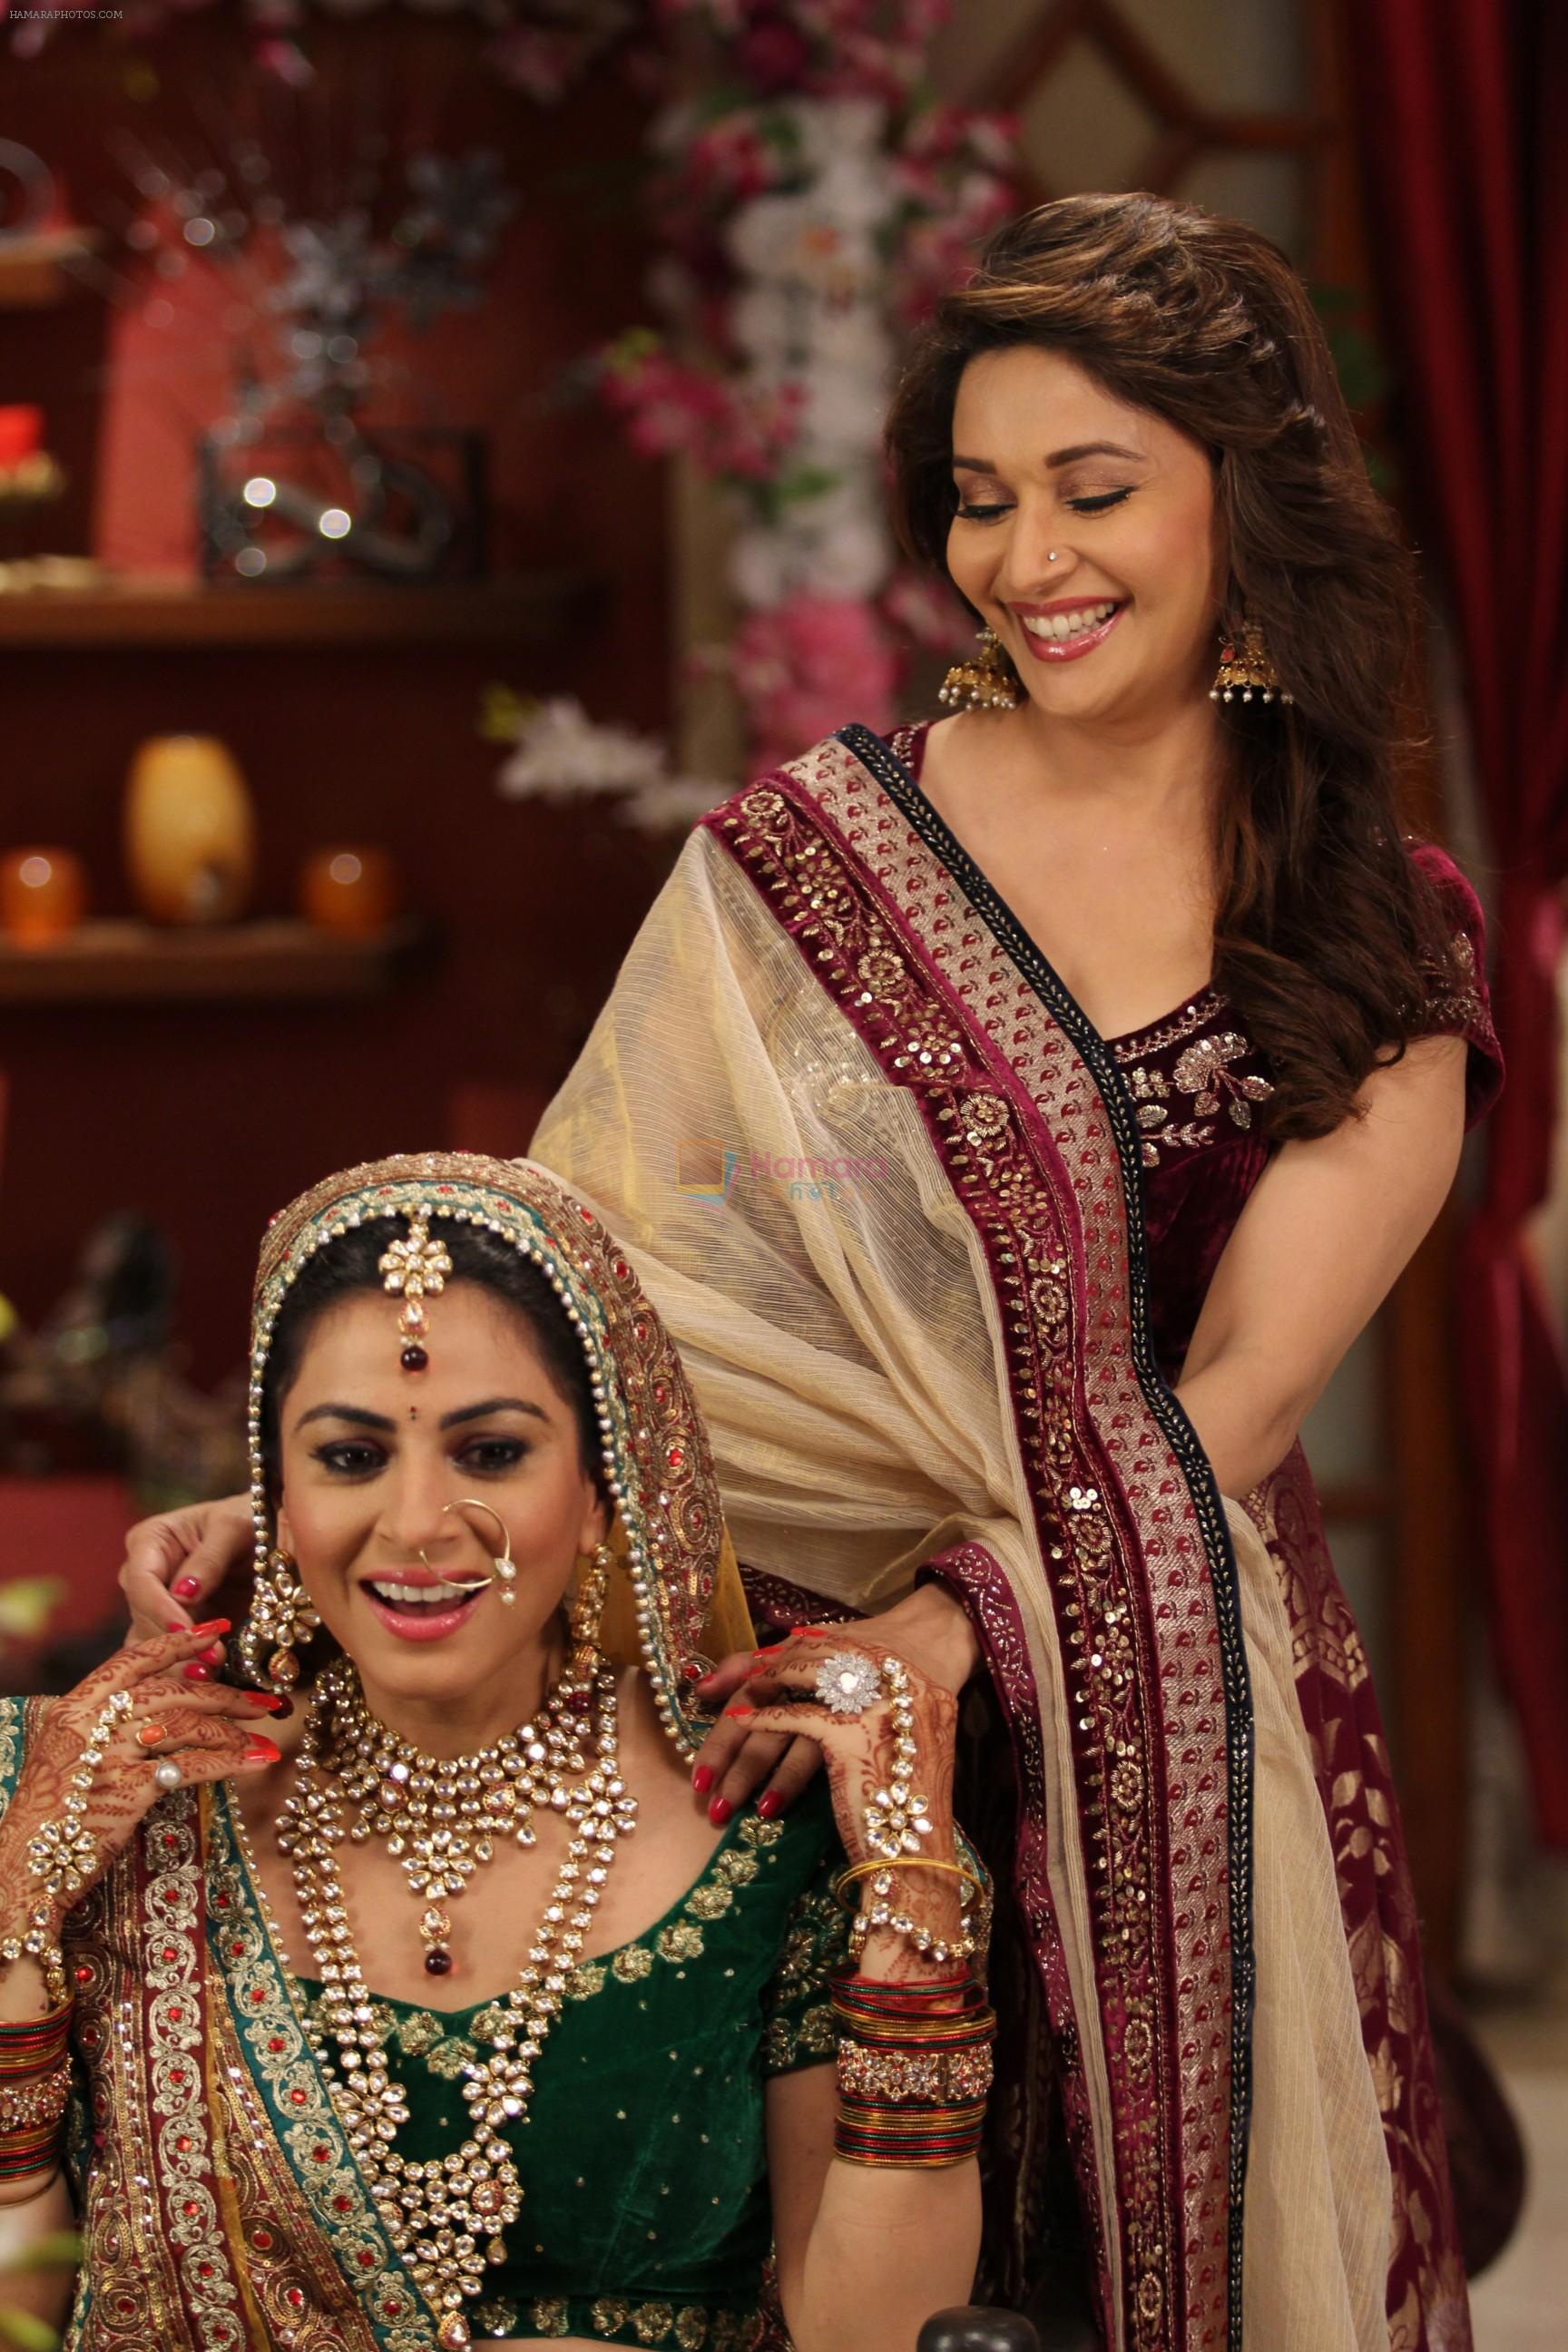 Madhuri Dixit Unseen Wedding Album || Madhuri Dixit ...